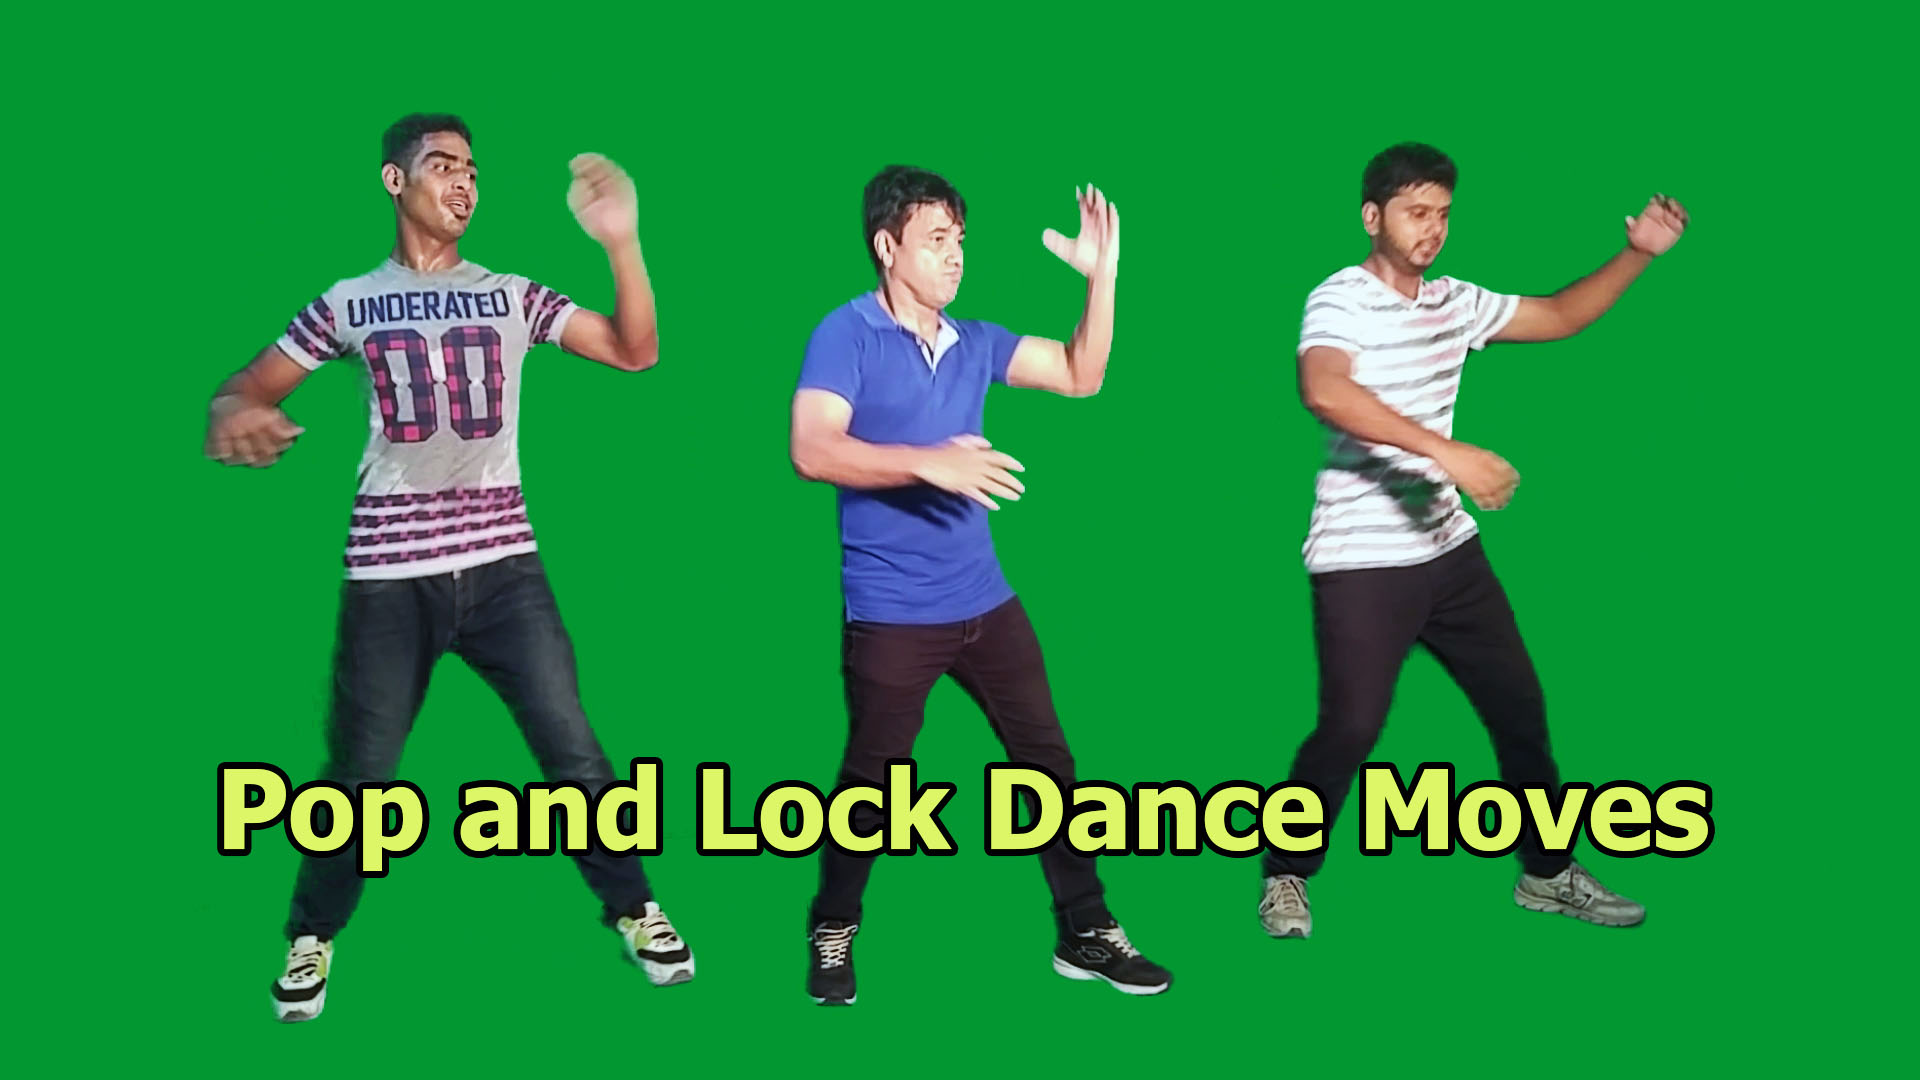 Locking and Popping Dance